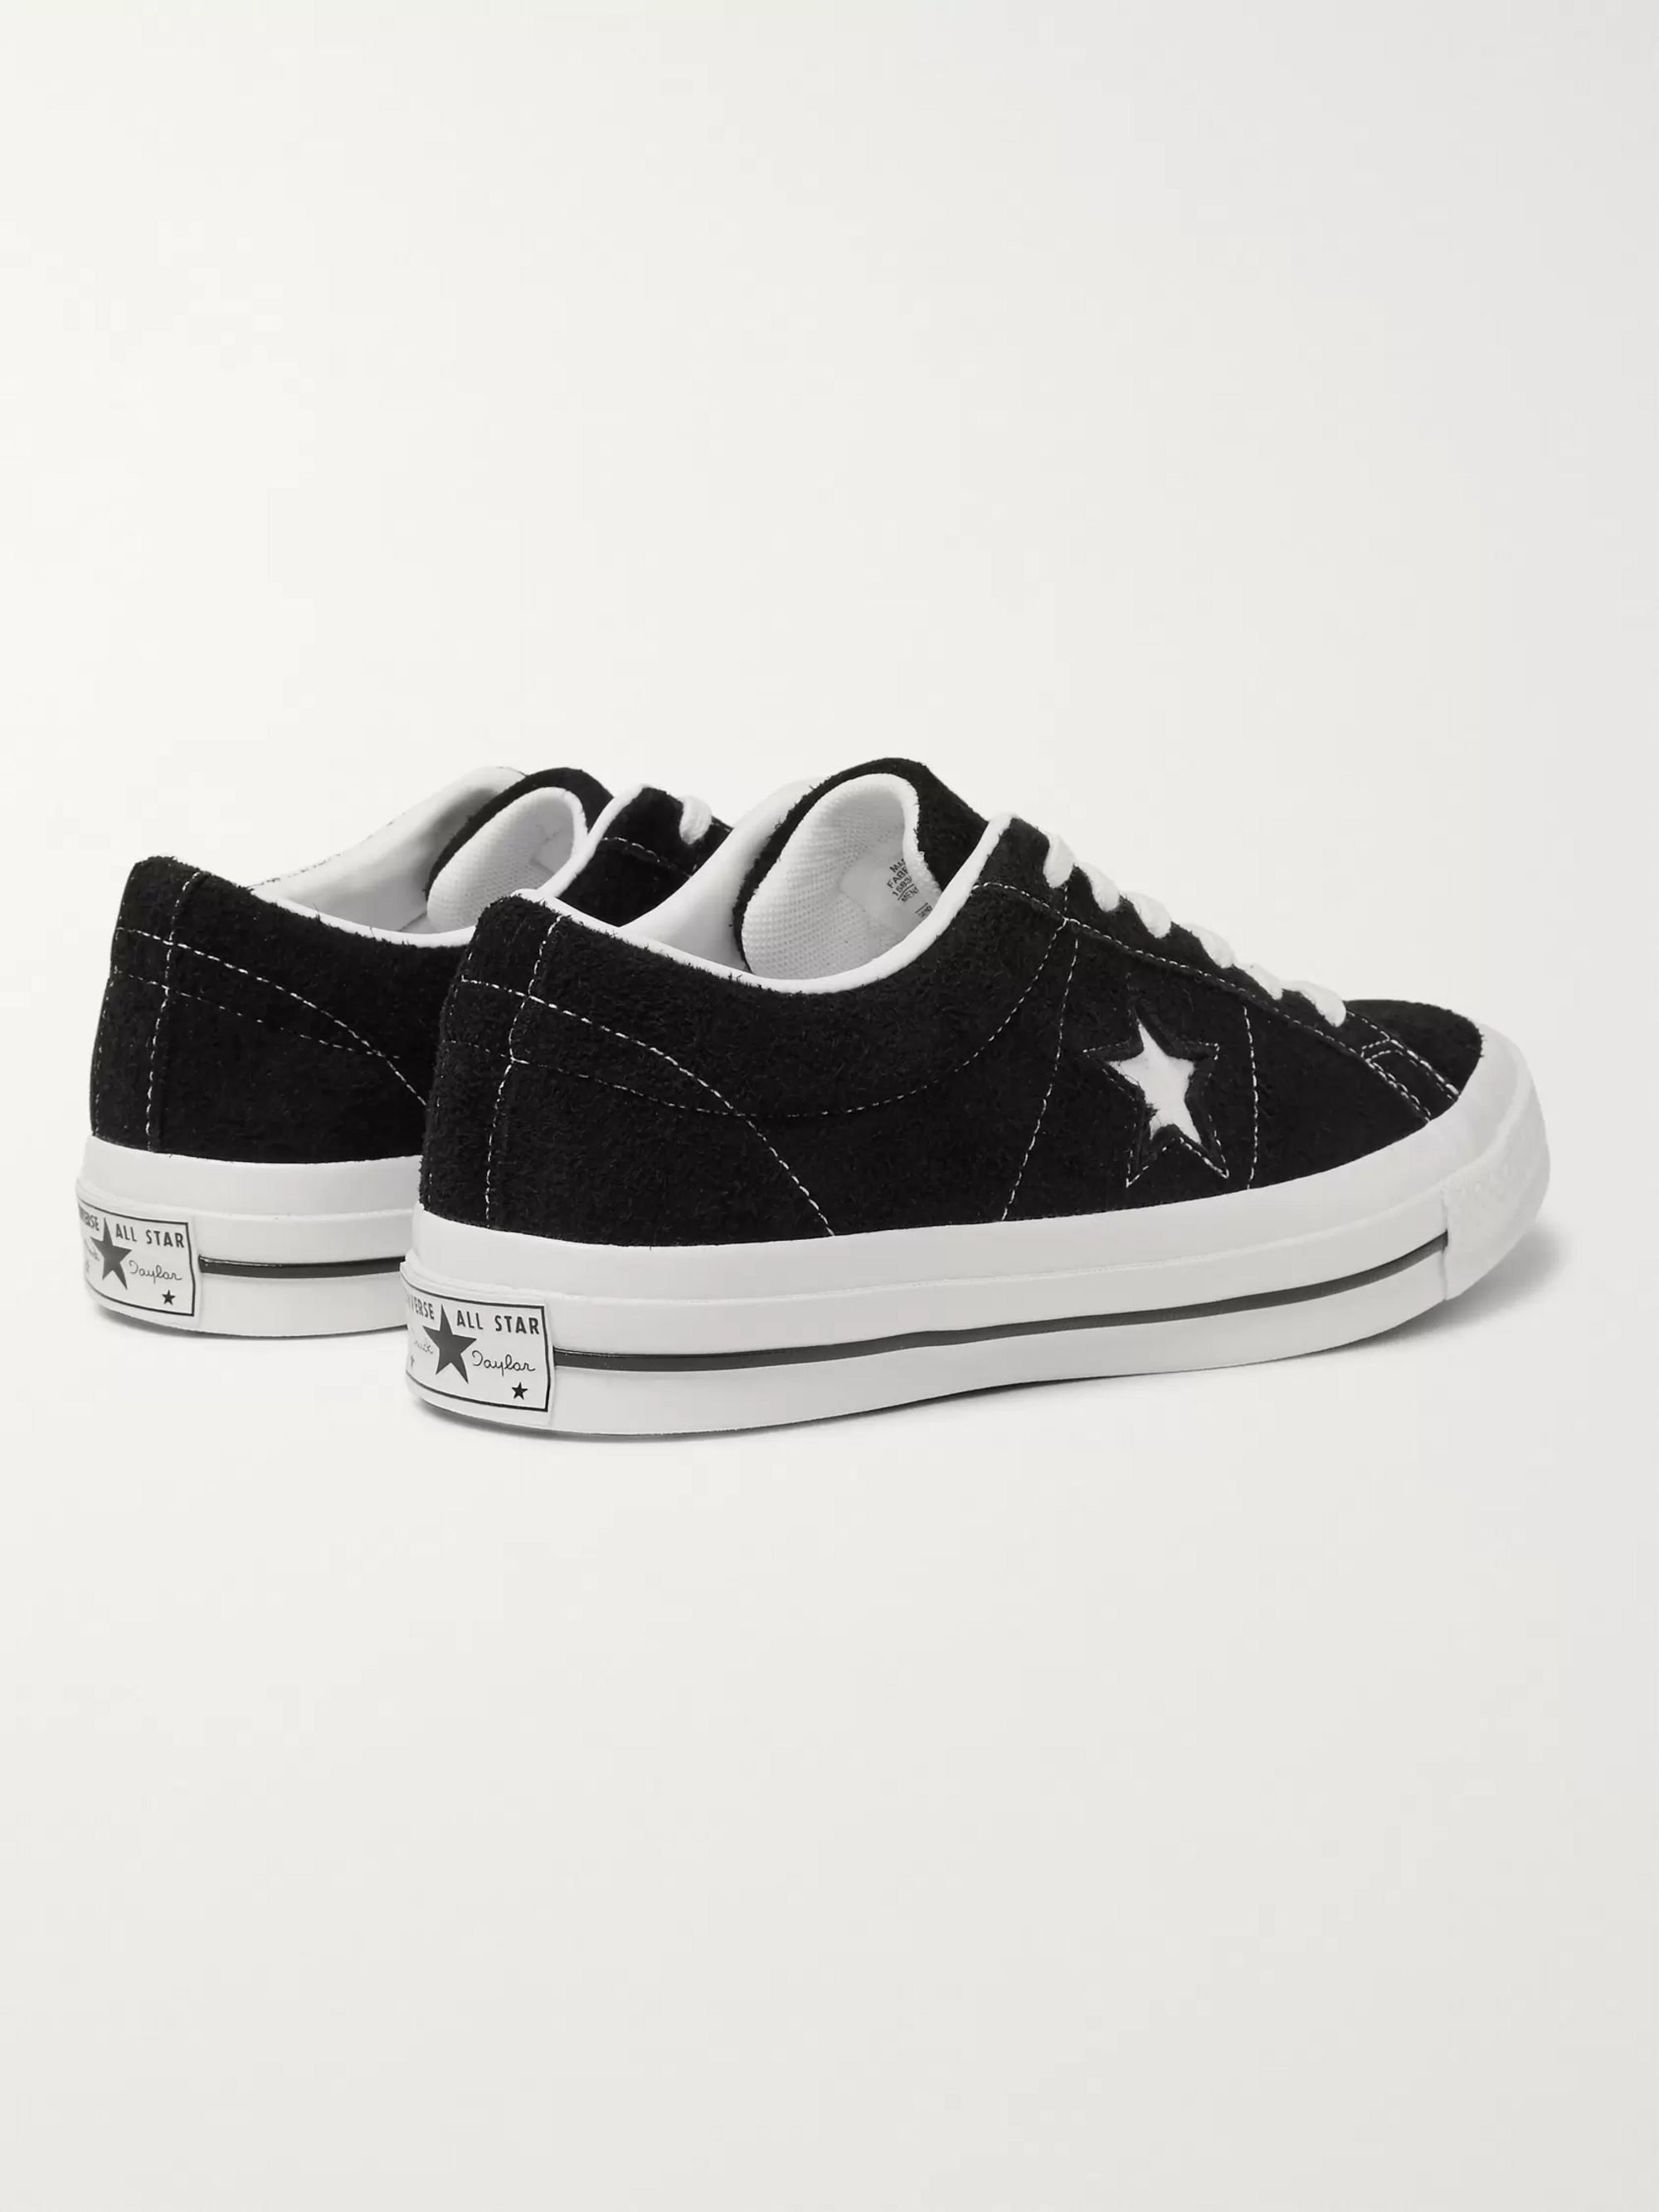 Converse One Star OX Suede Sneakers